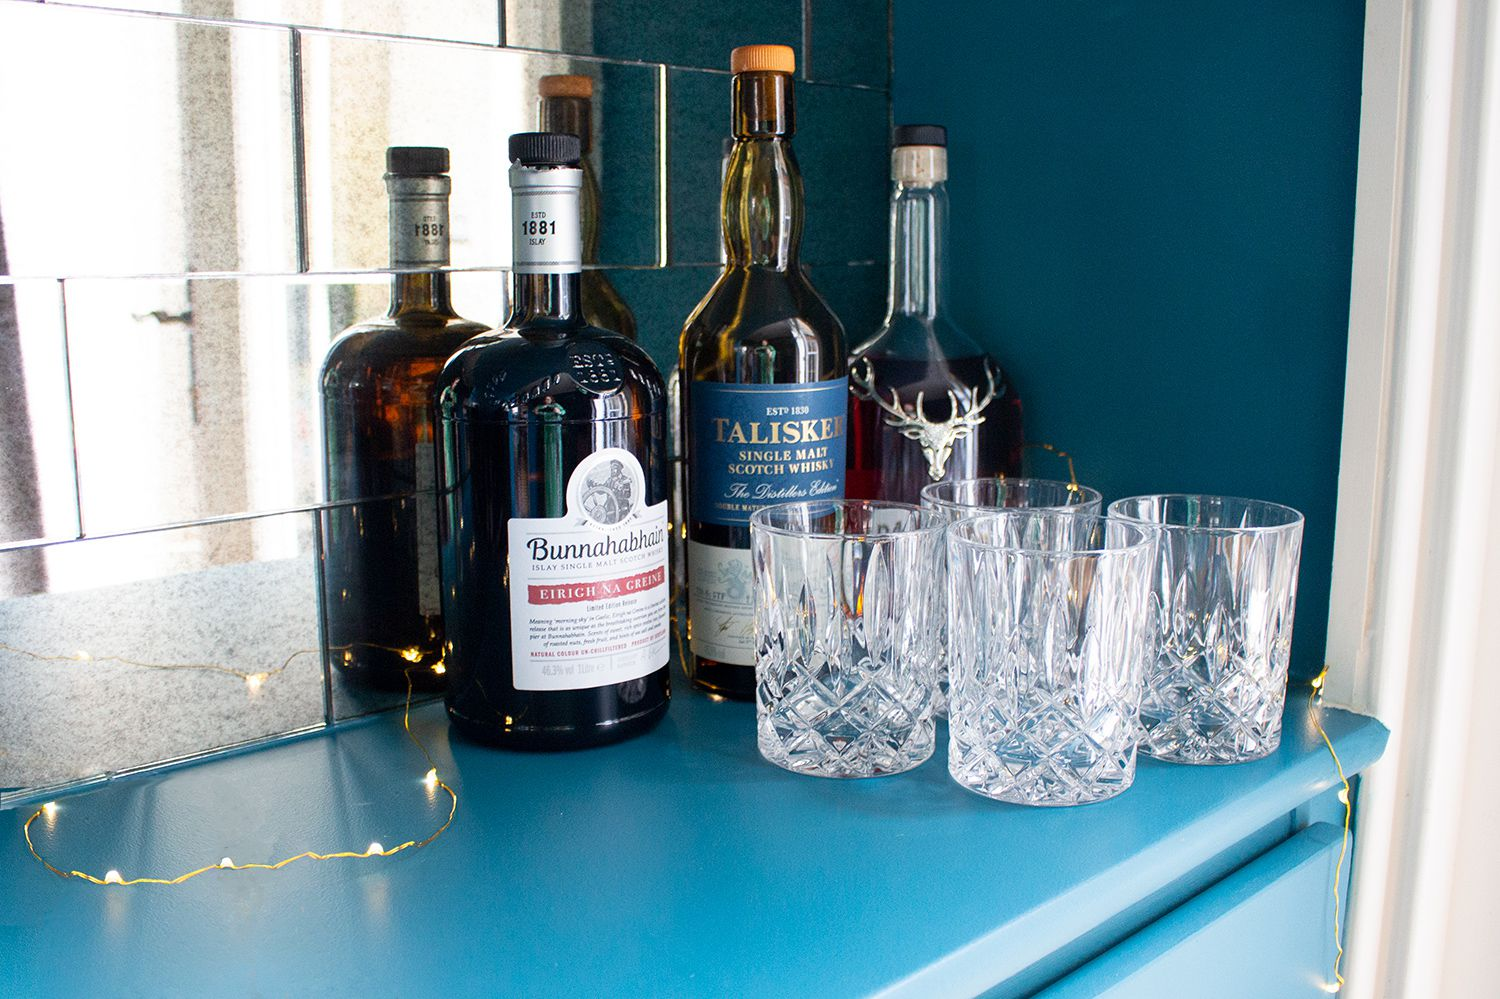 A close up photo of the spirit bottles and glasses in the teal painted room.